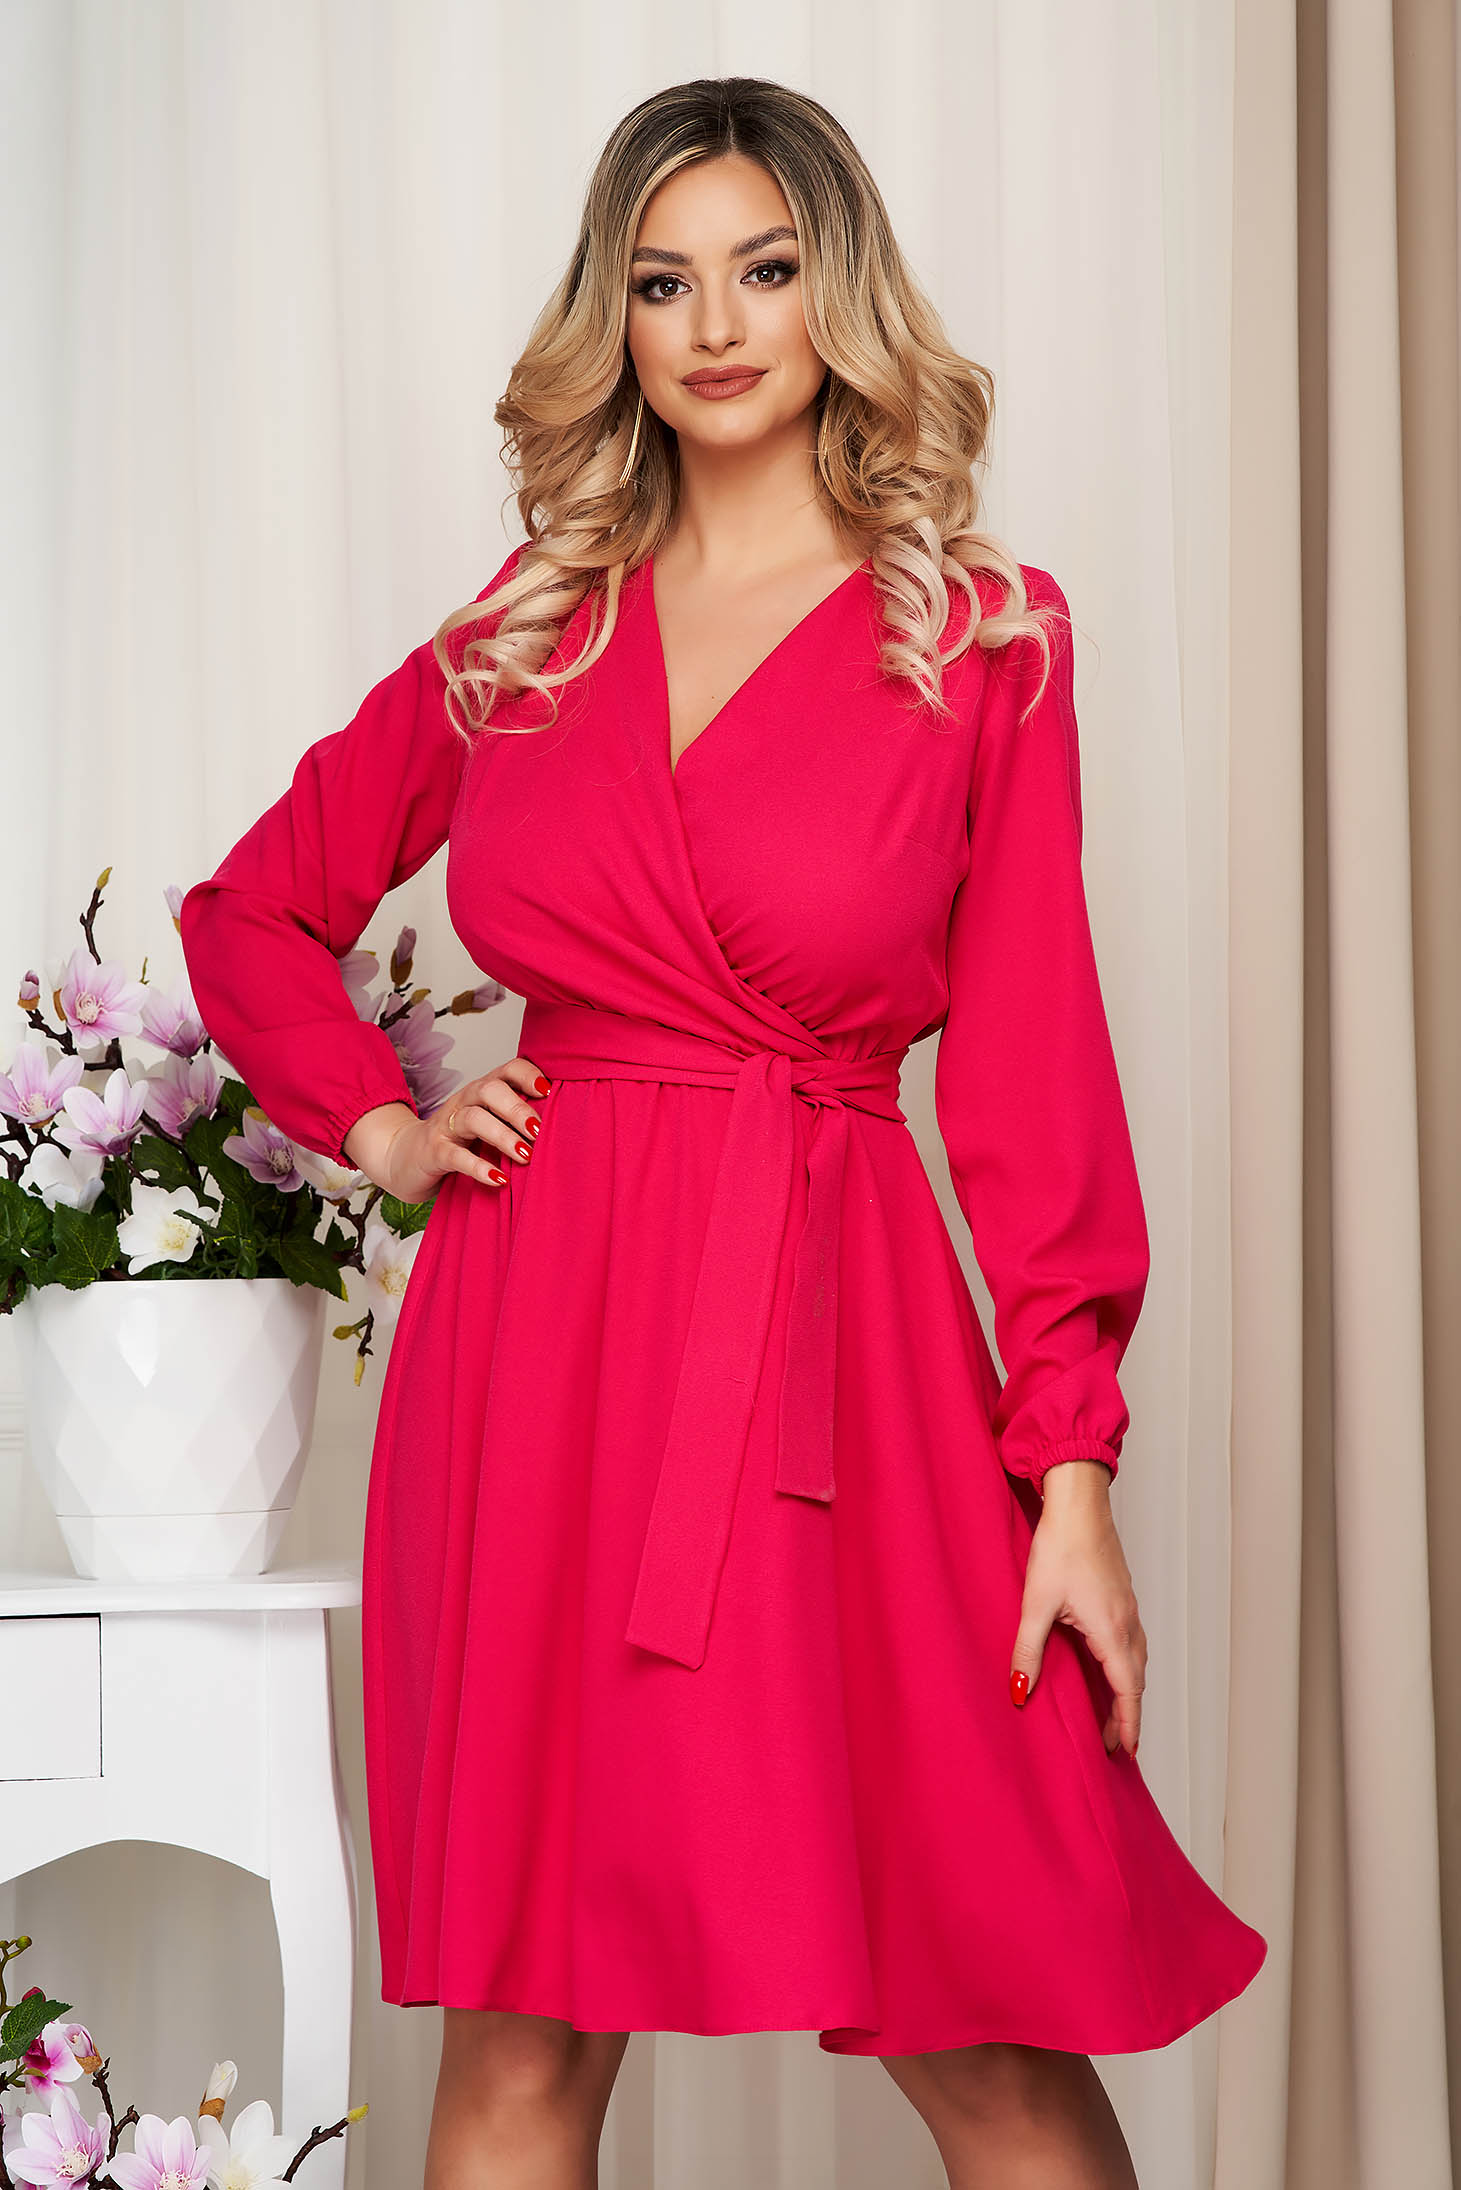 Dress StarShinerS fuchsia midi cloche with elastic waist wrap over front with inside lining